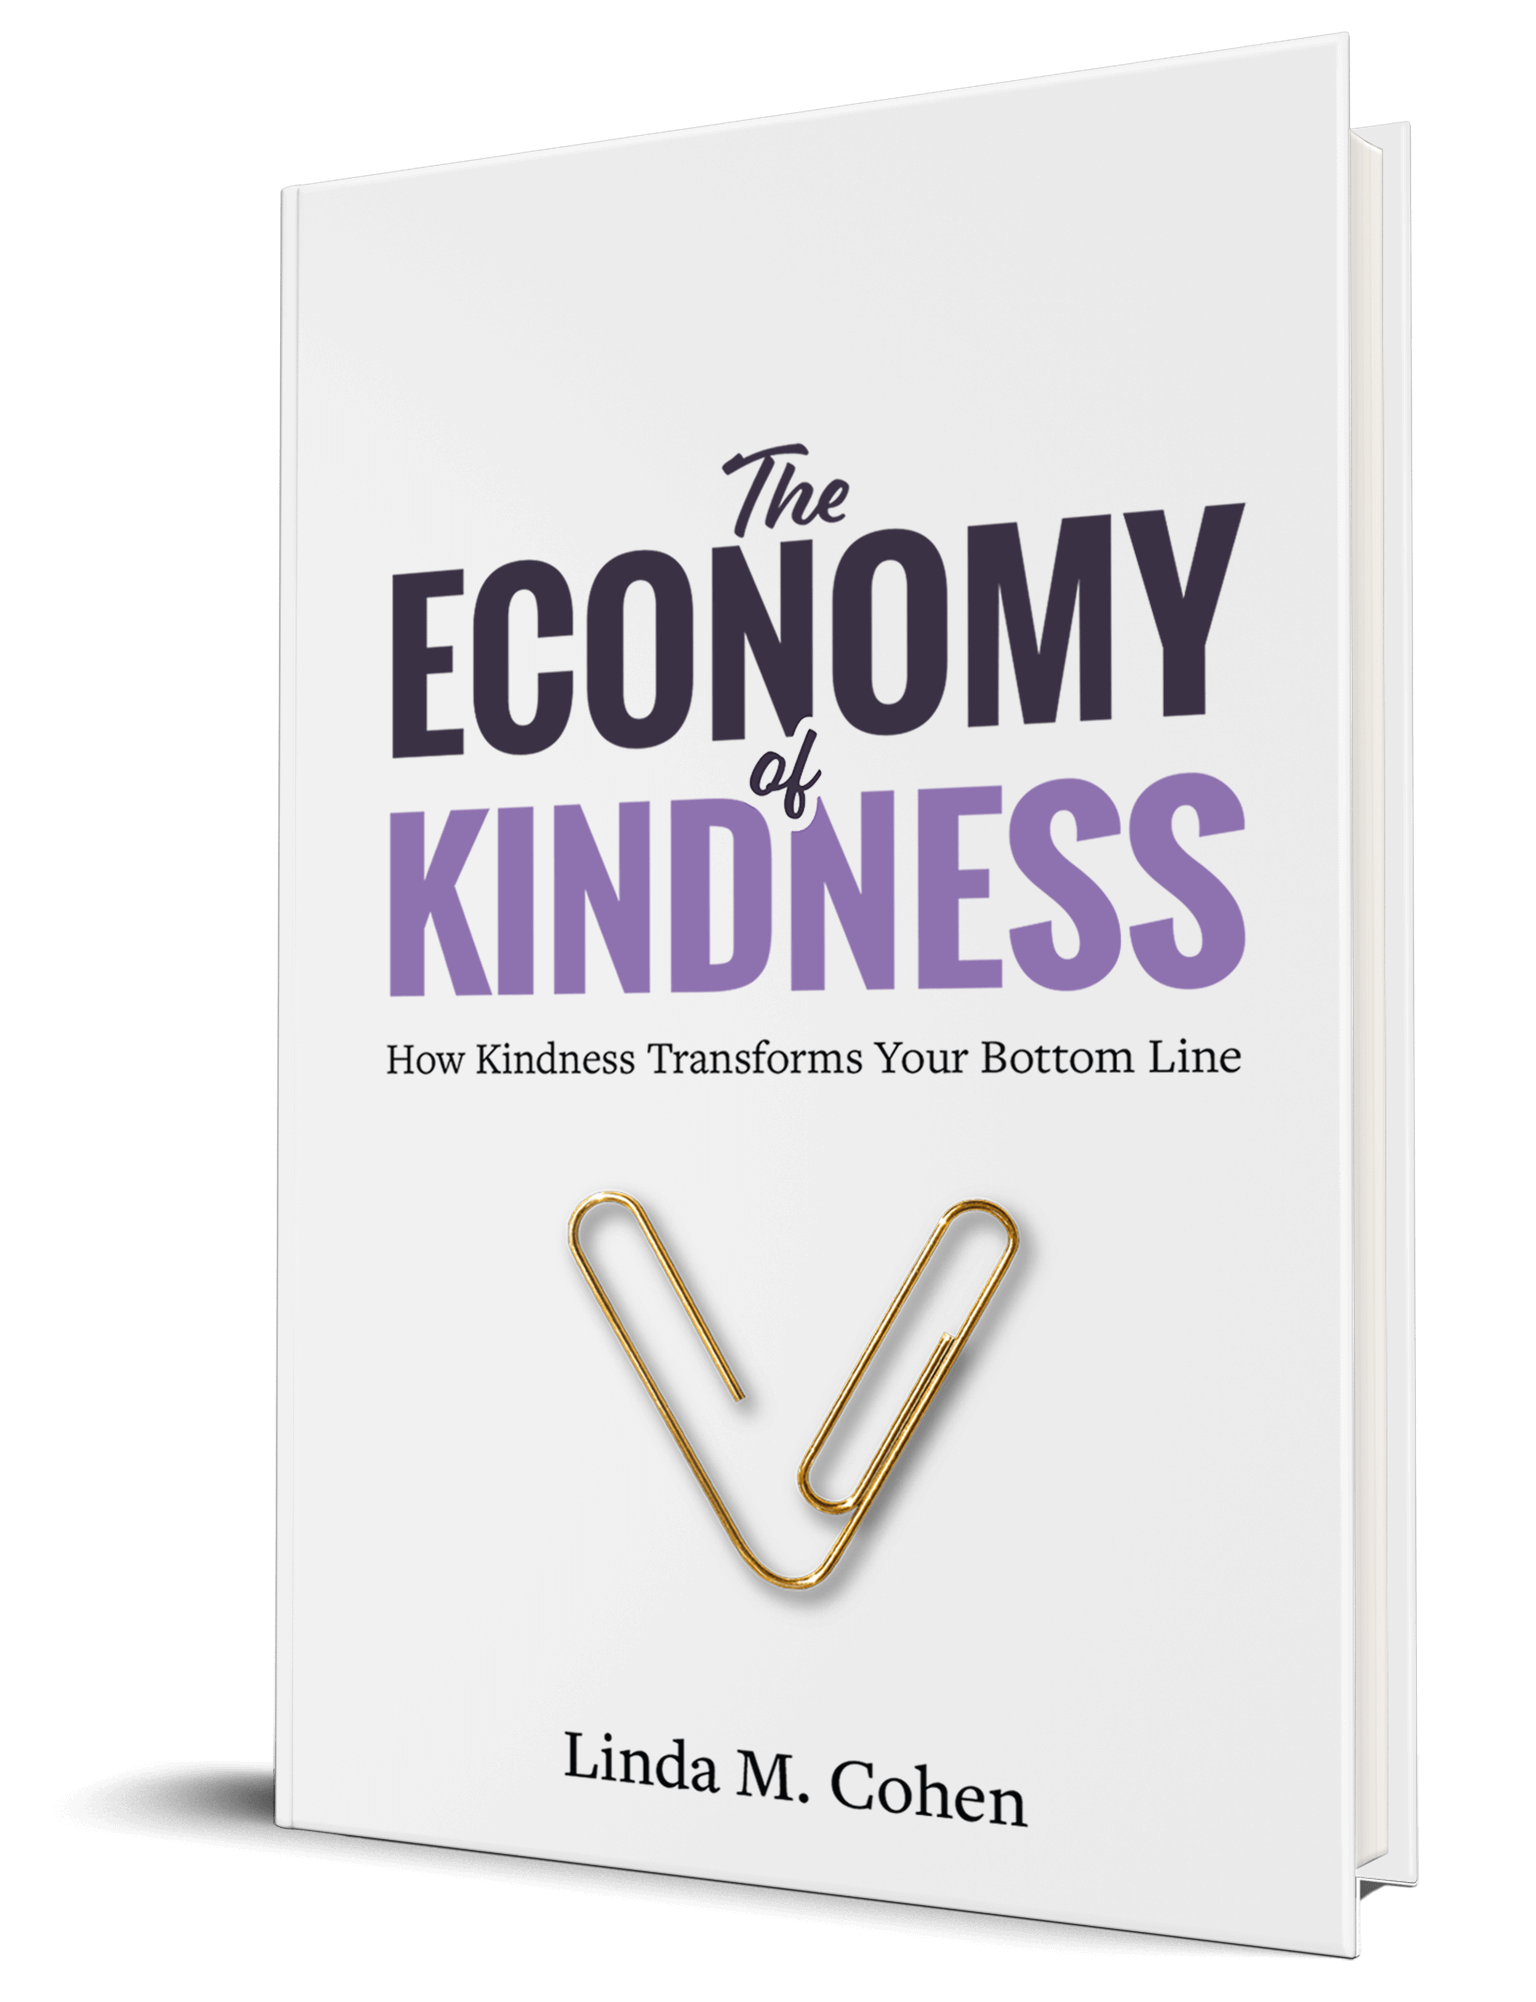 The Economy Of Kindness: How Kindness Transforms Your Bottom Line. A book by Linda Cohen, the Kindness Catalyst, keynote speaker and author of 1000 Mitzvahs